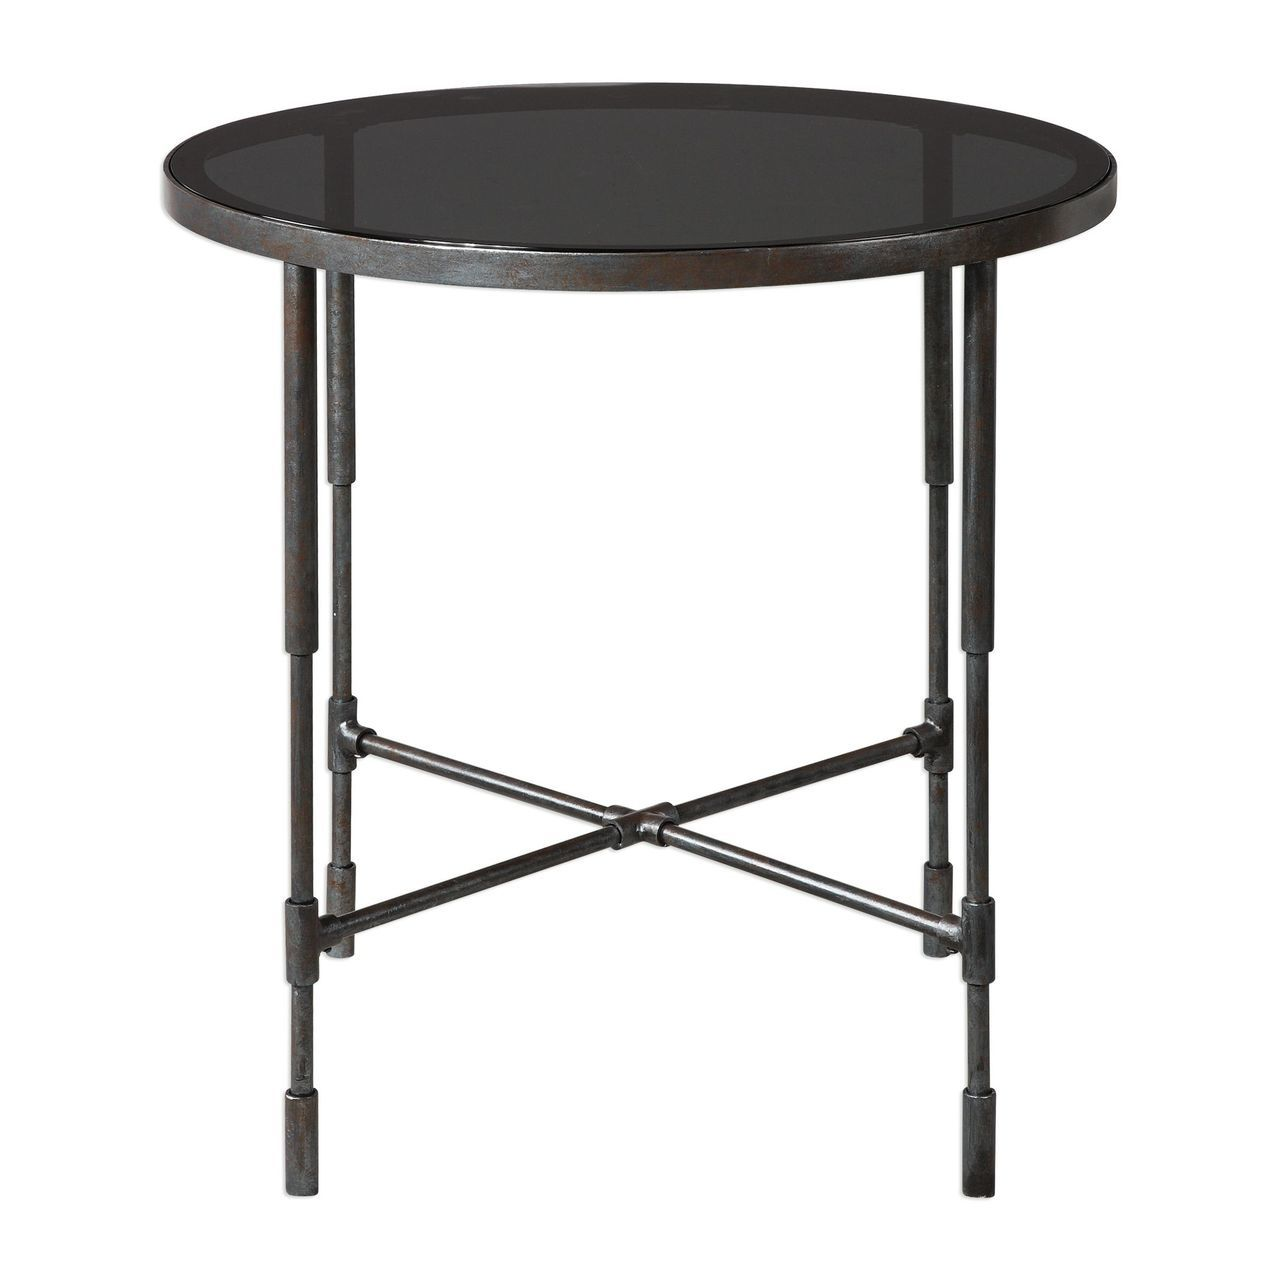 industrial mini rustic metal accent table round pipe fitting outdoor retro swanky home carpet door threshold rectangle mirrored coffee cool nest tables red asian lamp long thin